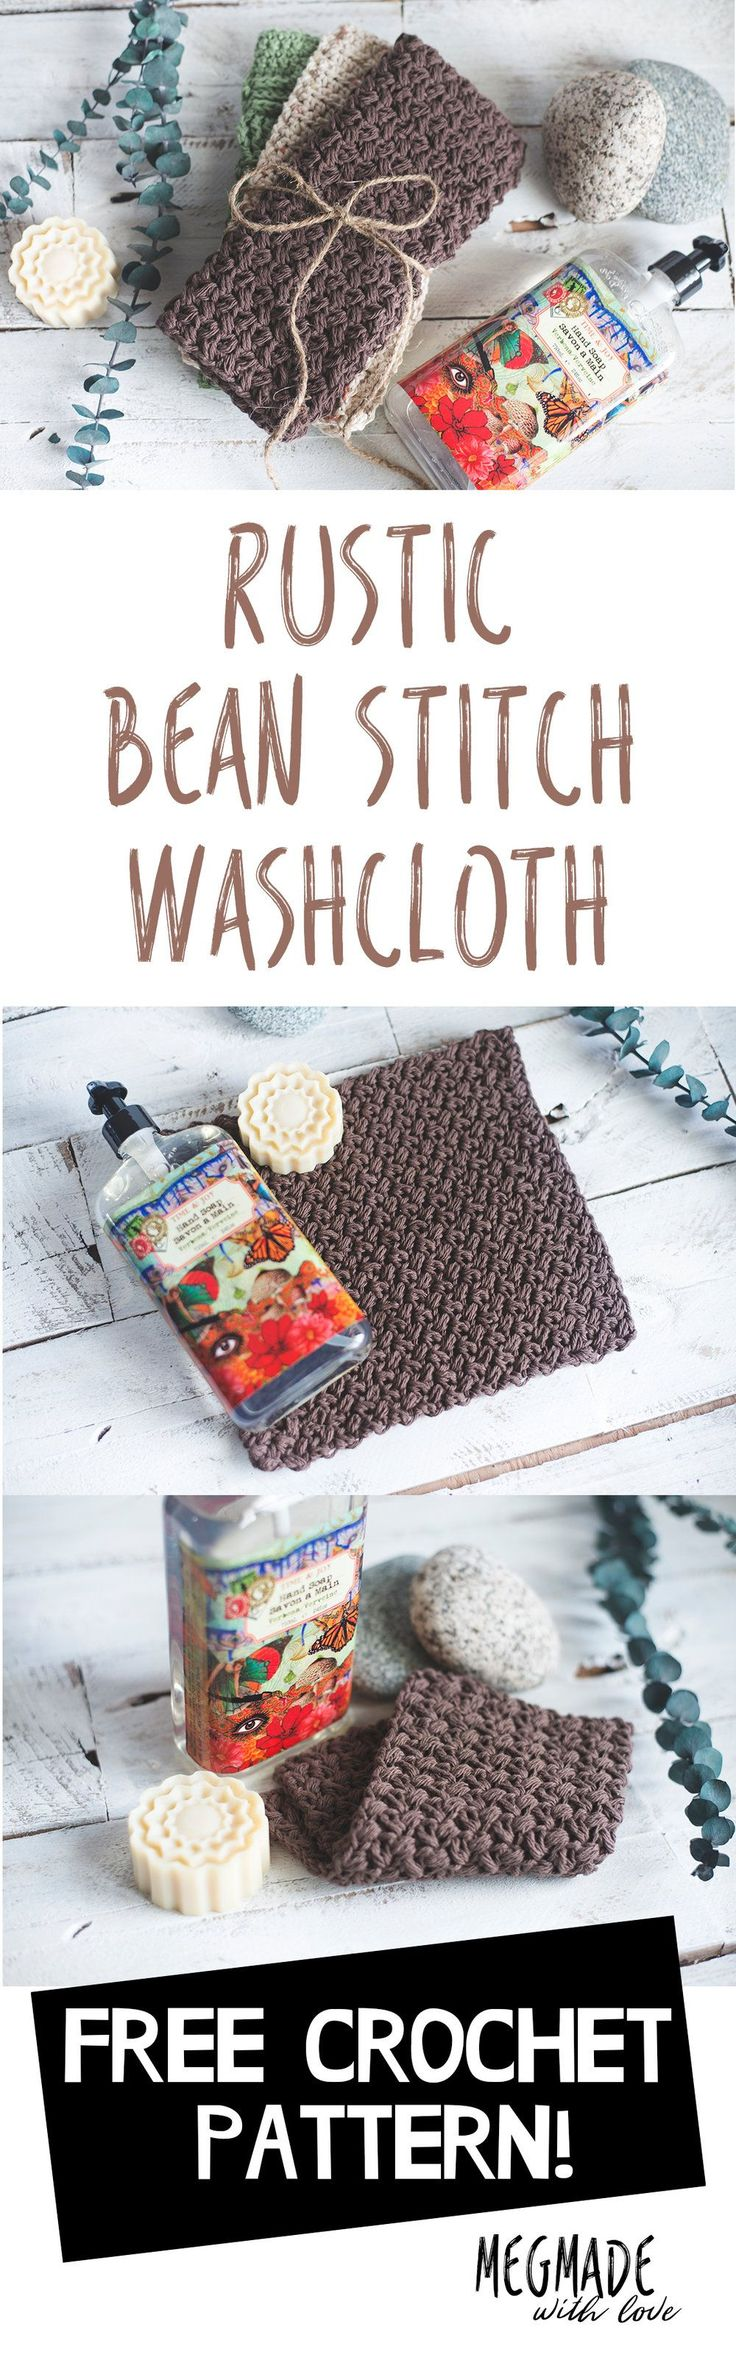 **Find the PDF version of this pattern along with two other washcloth  patterns over in my shop by clicking here. Great for easy printing!**  Hey there, friend!  This bean stitch washcloth is the first installment of my rustic washcloth  patterns I'll be releasing this week. There are two more